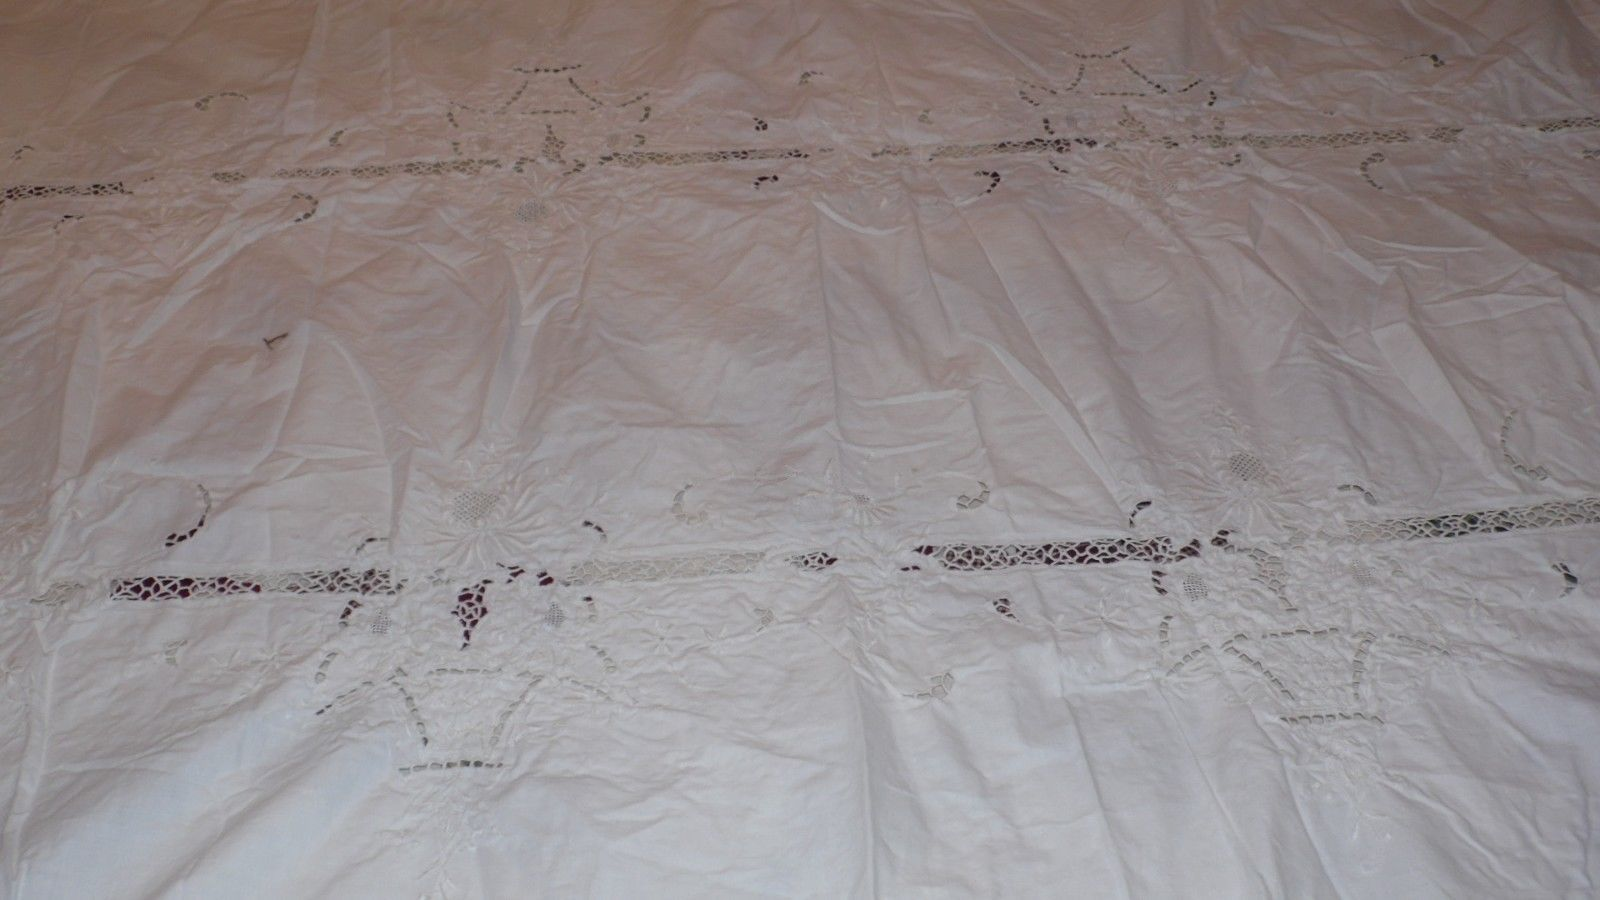 VINTAGE EMBROIDERED OBLONG TABLECLOTH FLORAL BOUQUET DESIGN ARTICULATED 90X61